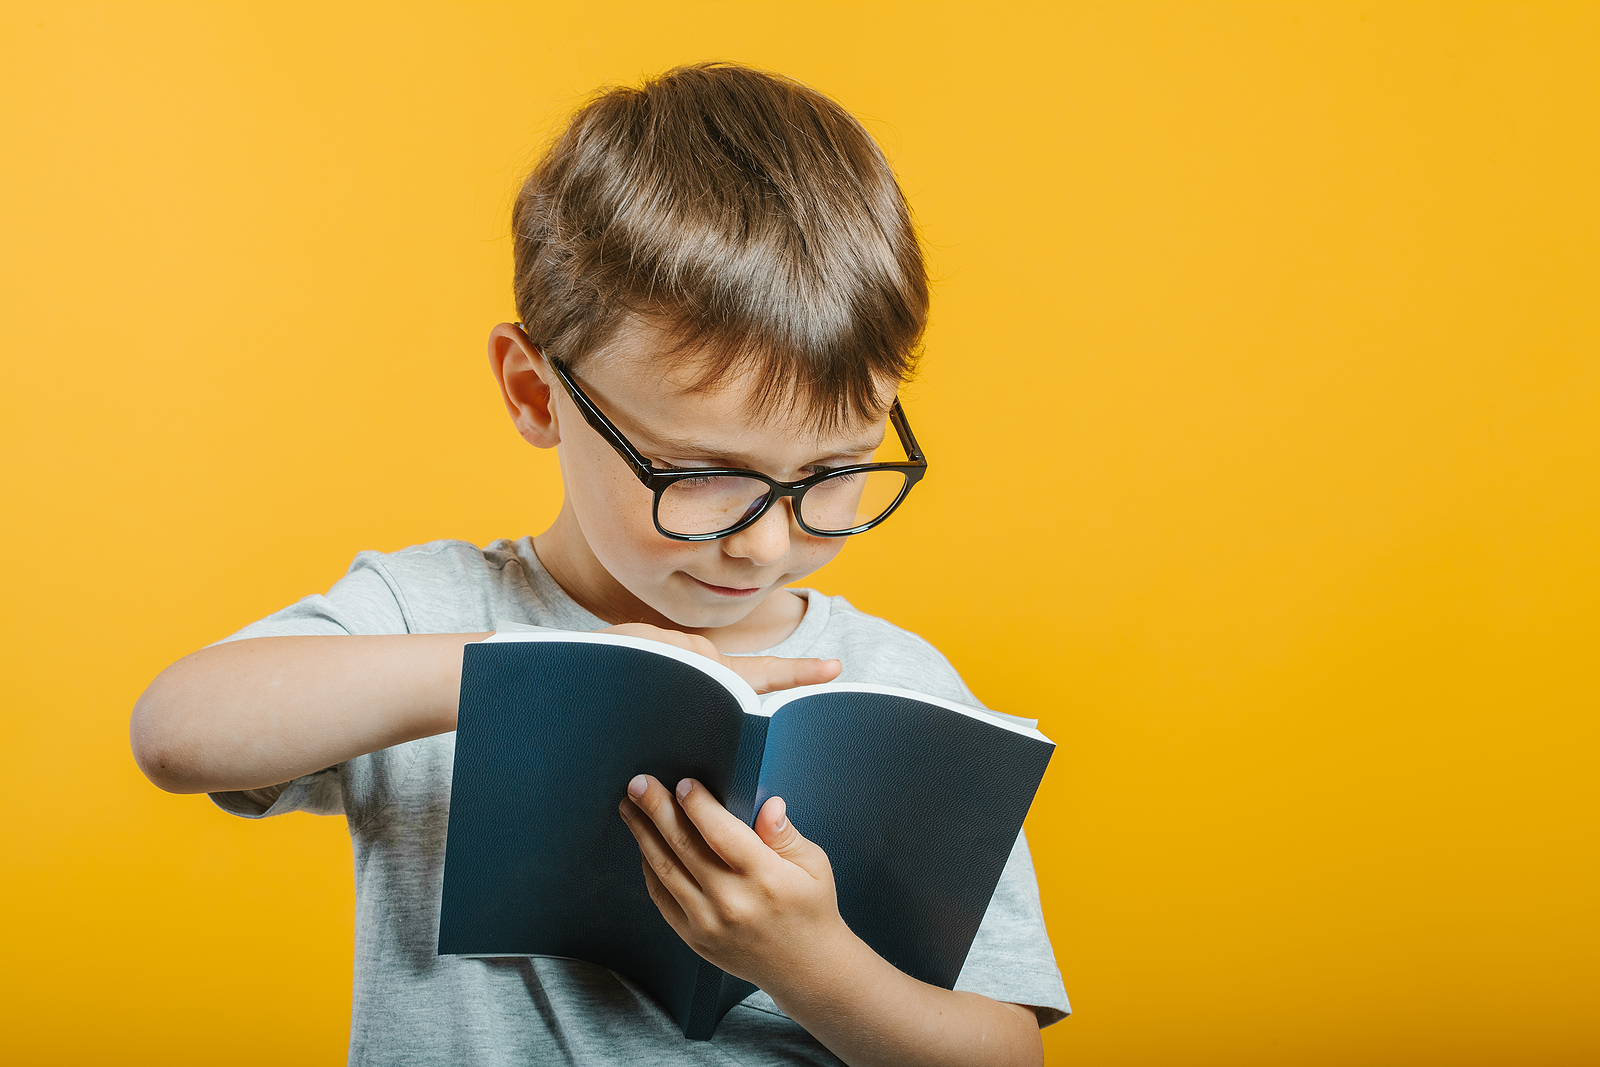 A child wearing glasses points to the page they are reading from their book. This could represent a curious student benefiting from Fit Reading. Contact Fit Learning for more info on finding the right private school tutor in St. Louis, MO to get reading help for your child